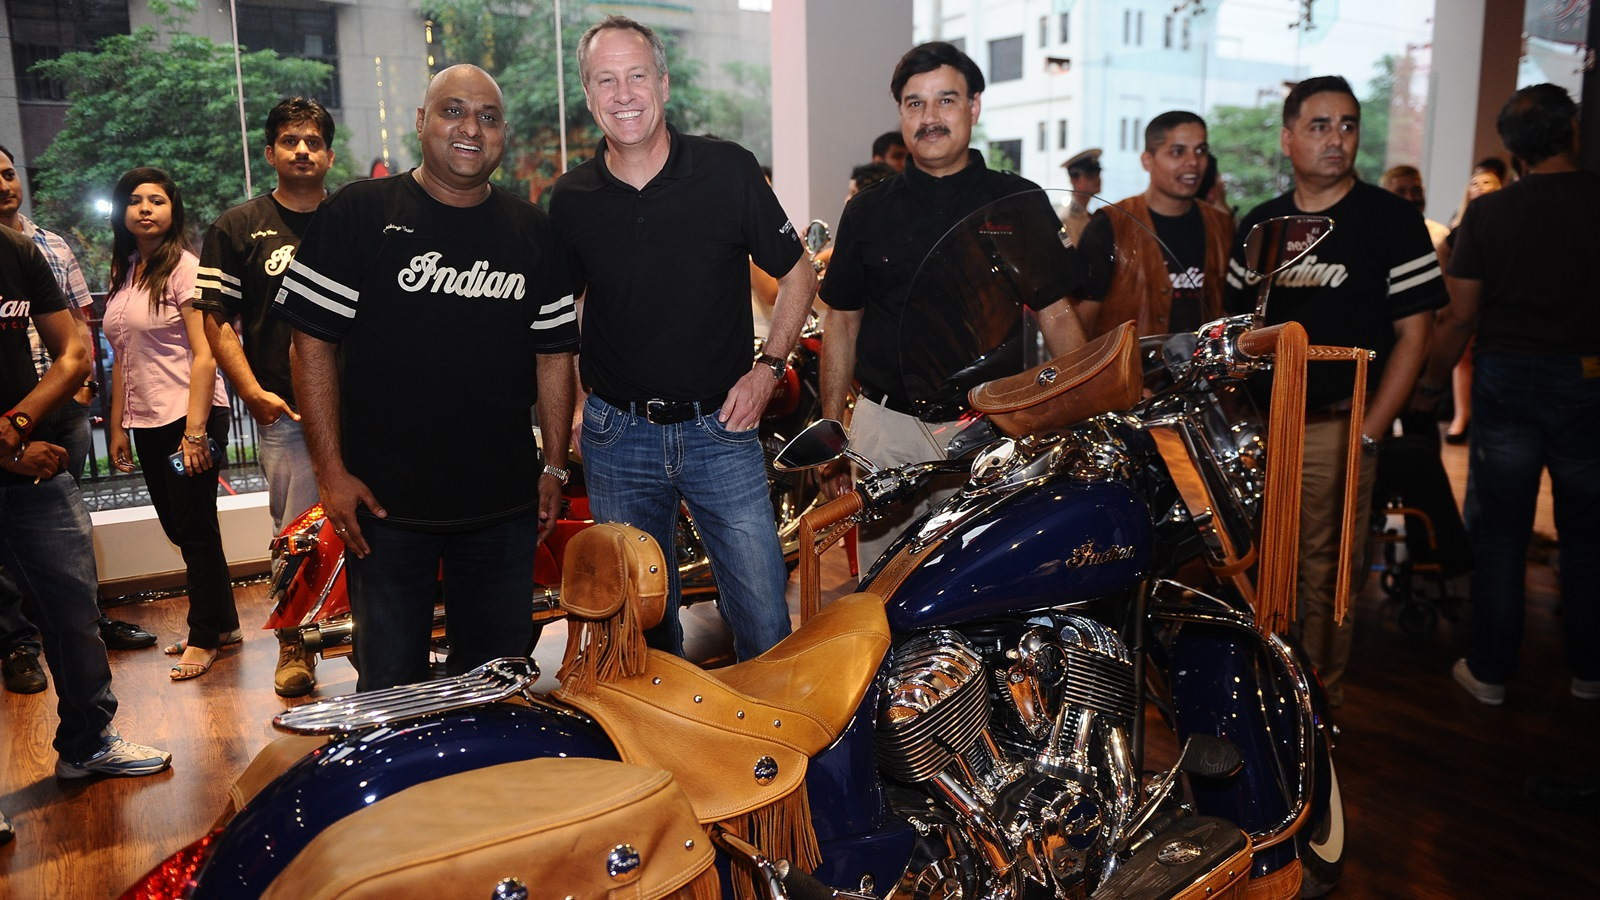 Indian Motorcycle Dealership India  (L to R) Mr Sandeep Bansil, Dealership Principal - Indian Motorcycle, Mr Bennett Morgan, COO-Polaris Industries, Mr Pankaj Dubey - MD Polaris India